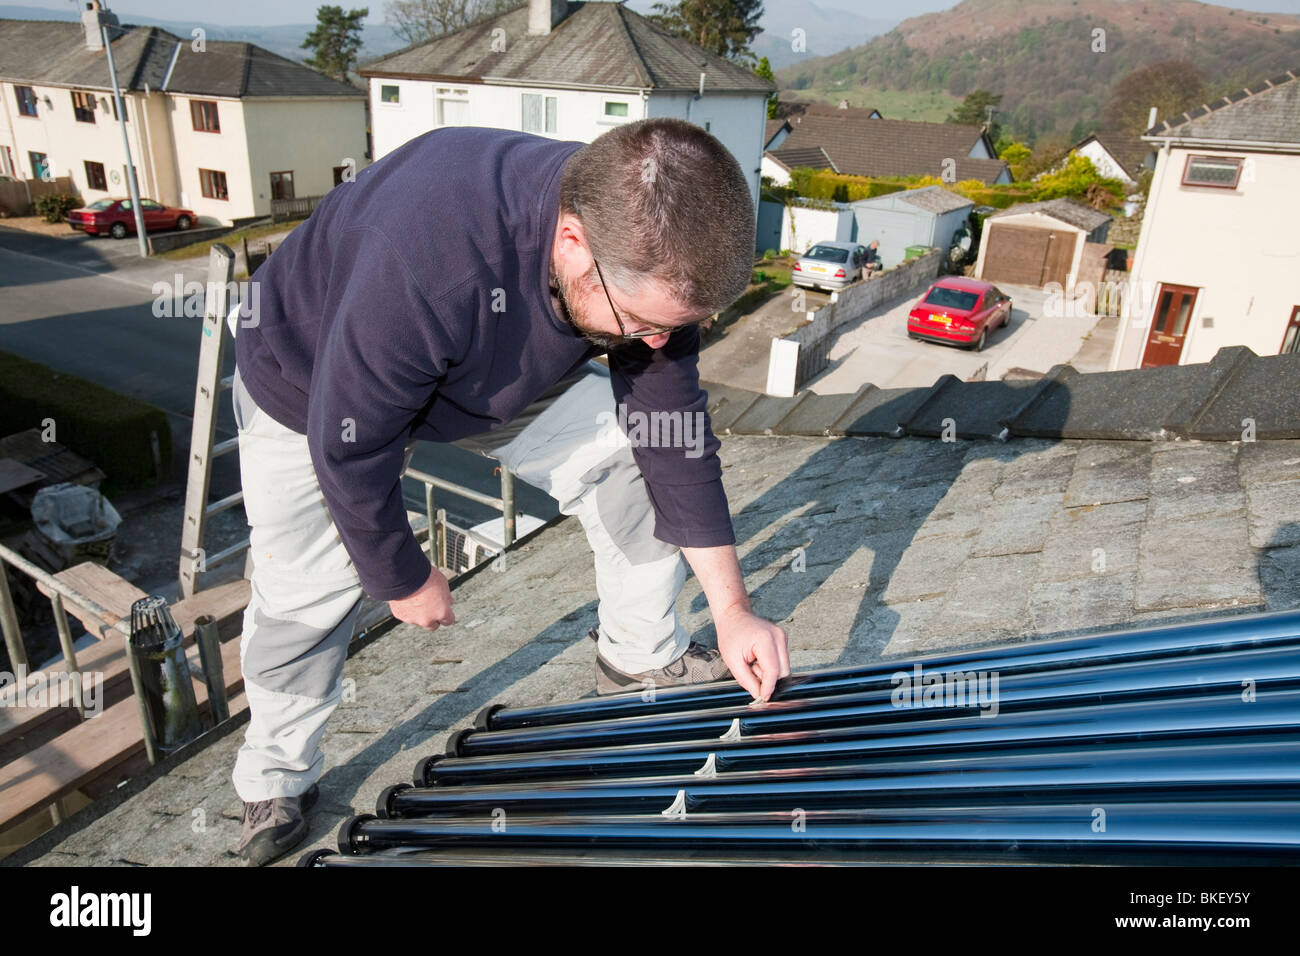 A householder fitting a solar water heating panel to his house roof in Ambleside cumbria UK - Stock Image